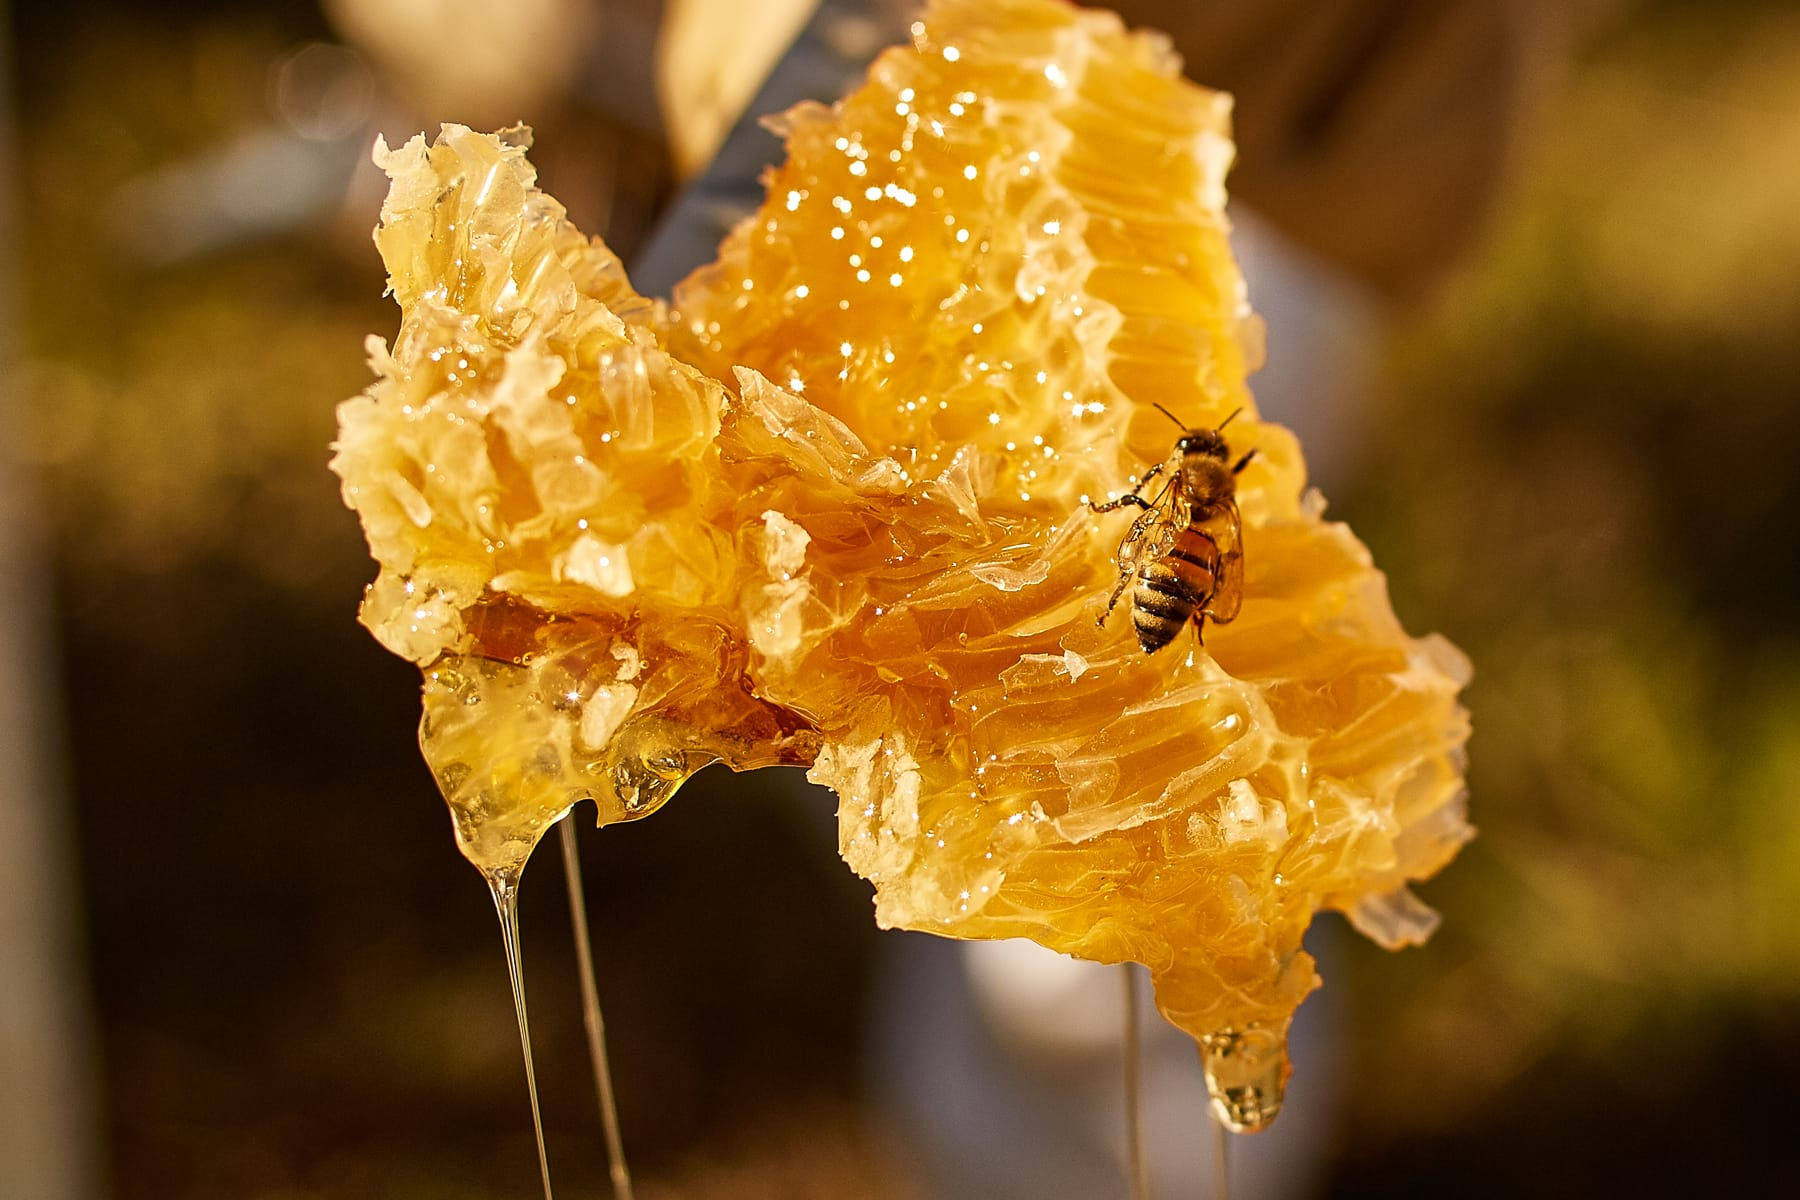 Bee on extracted honeycomb